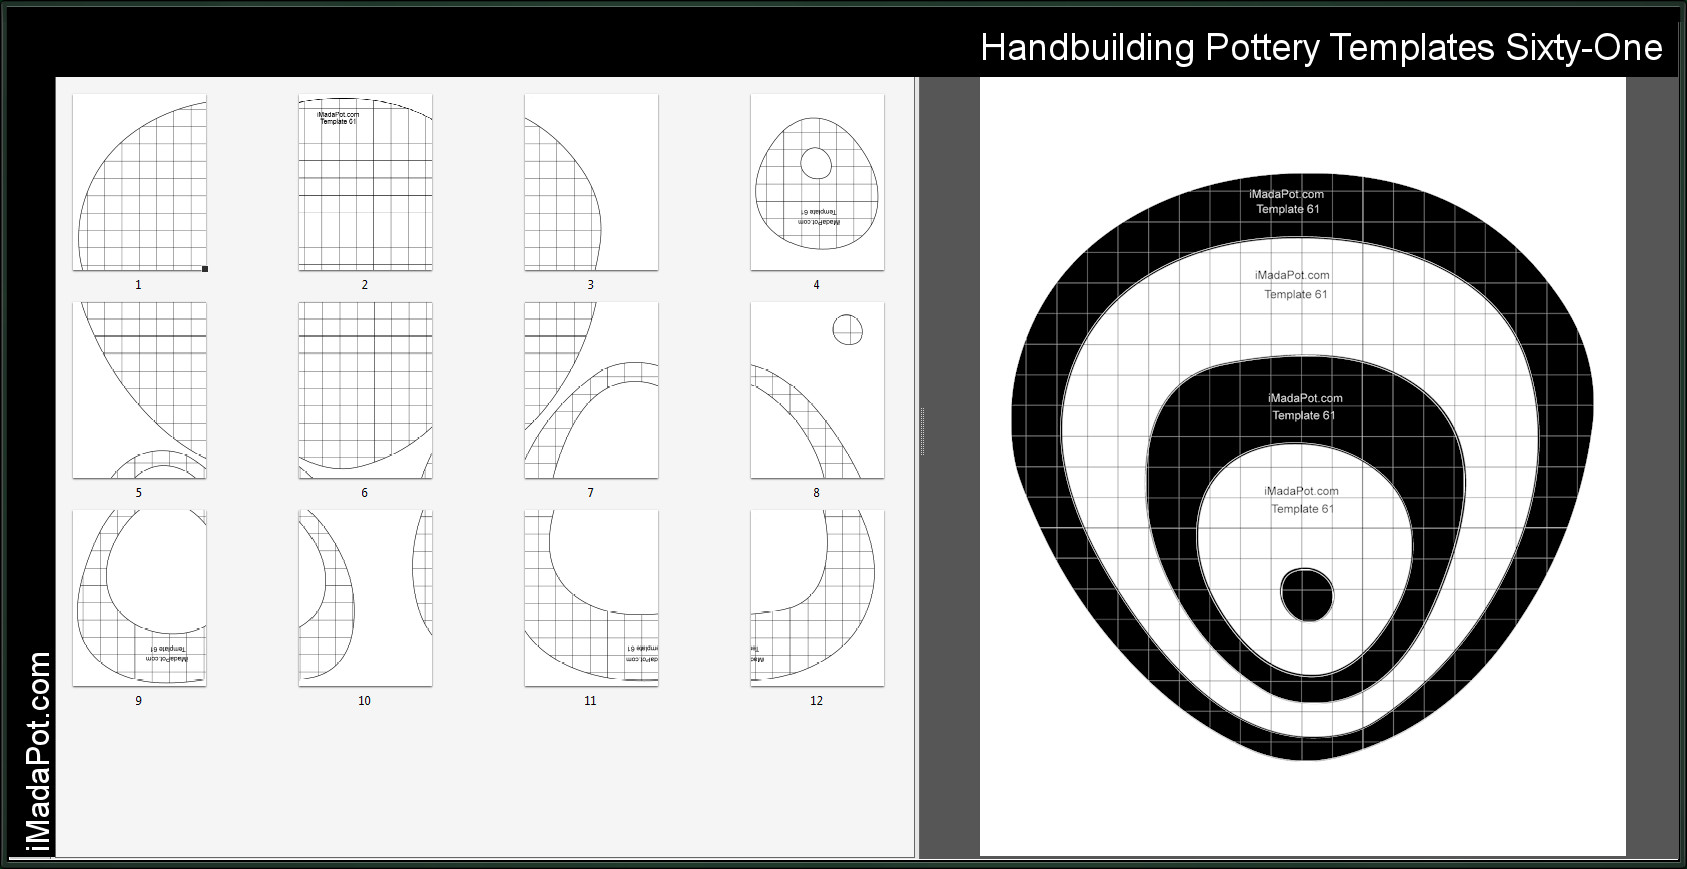 Printable Pottery Templates Printable Pottery Templates Handbuilding Patterns